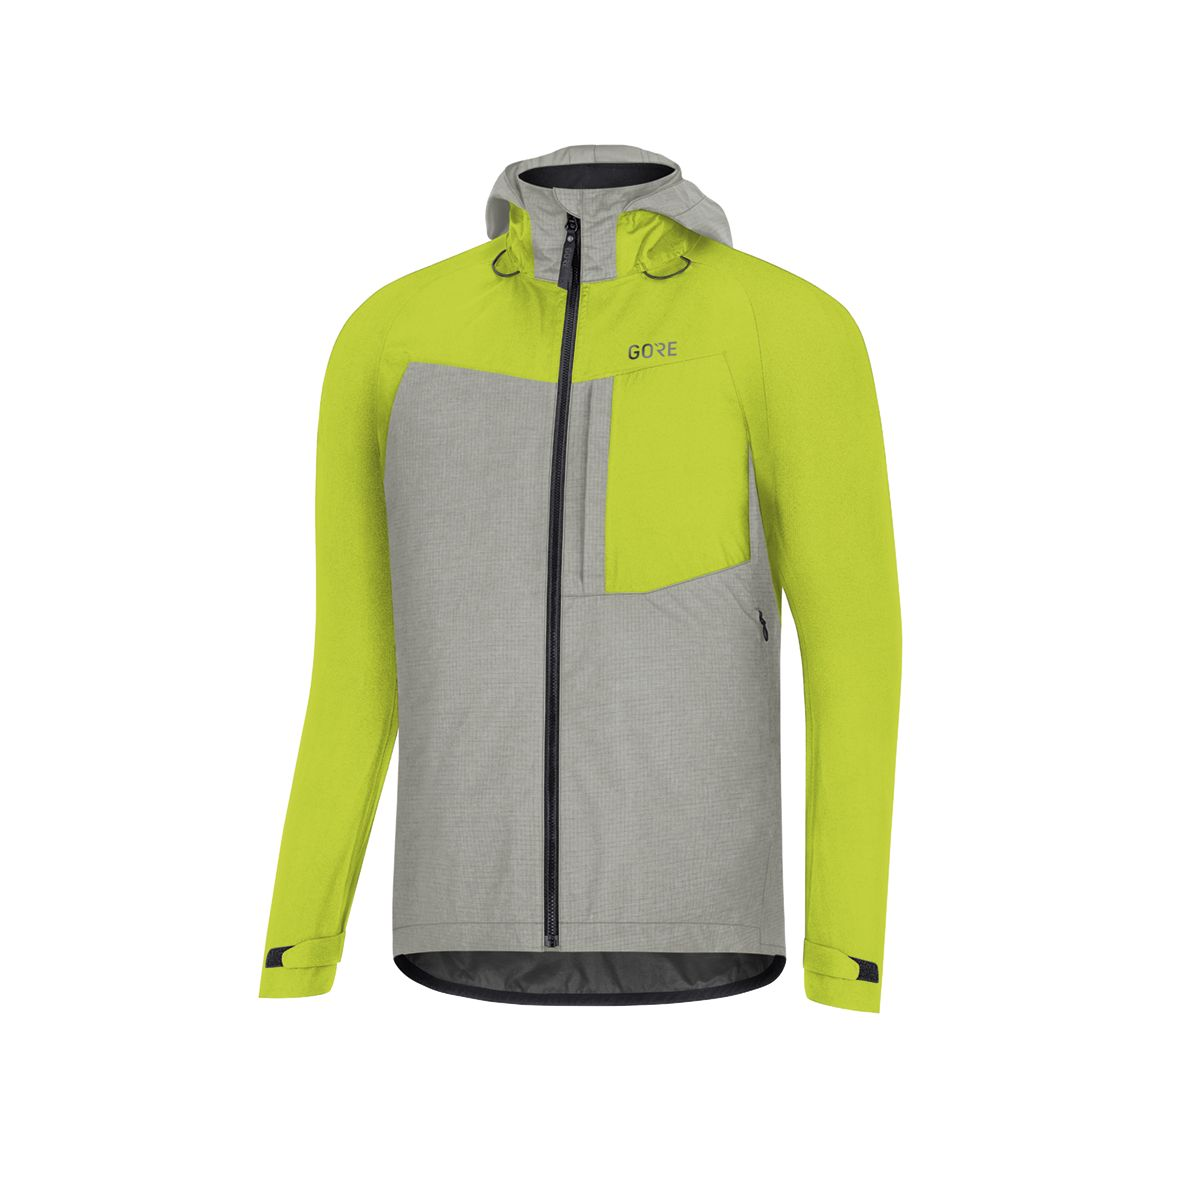 C5 GORE-TEX TRAIL HOODED JACKET Waterproof